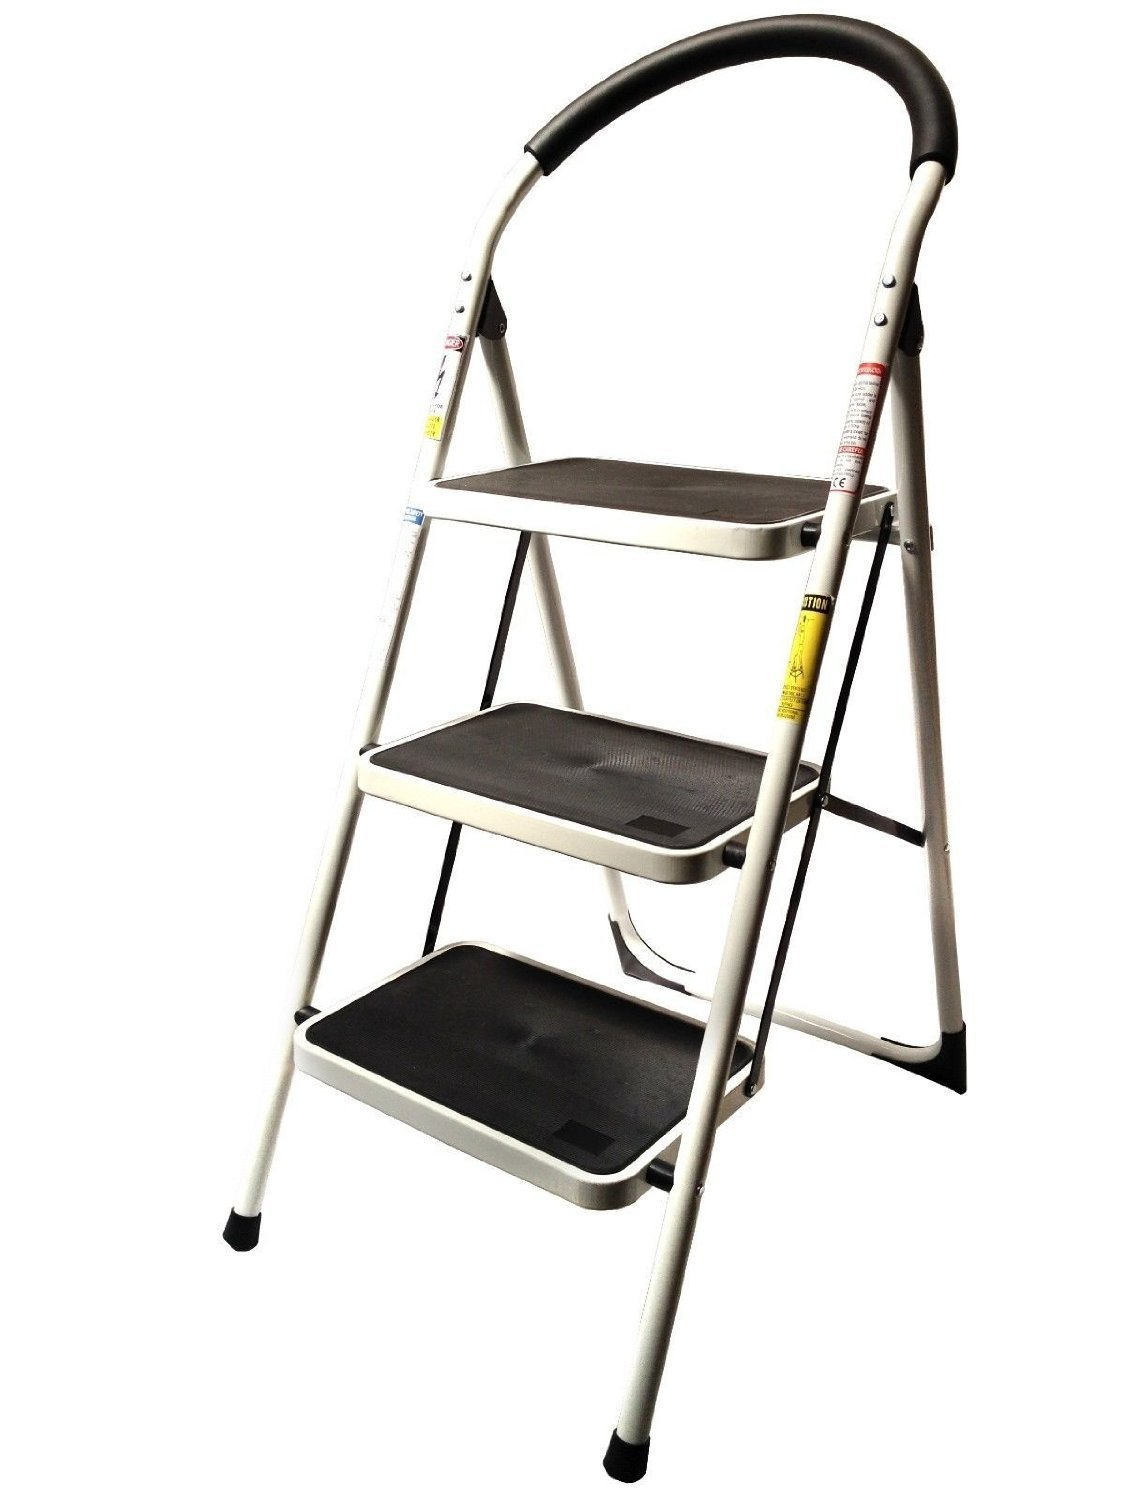 330lbs Upper Reach Reinforced Metal Folding Step Ladder Stool Household Kitchen Use Three Quality And Strength Holds At Least